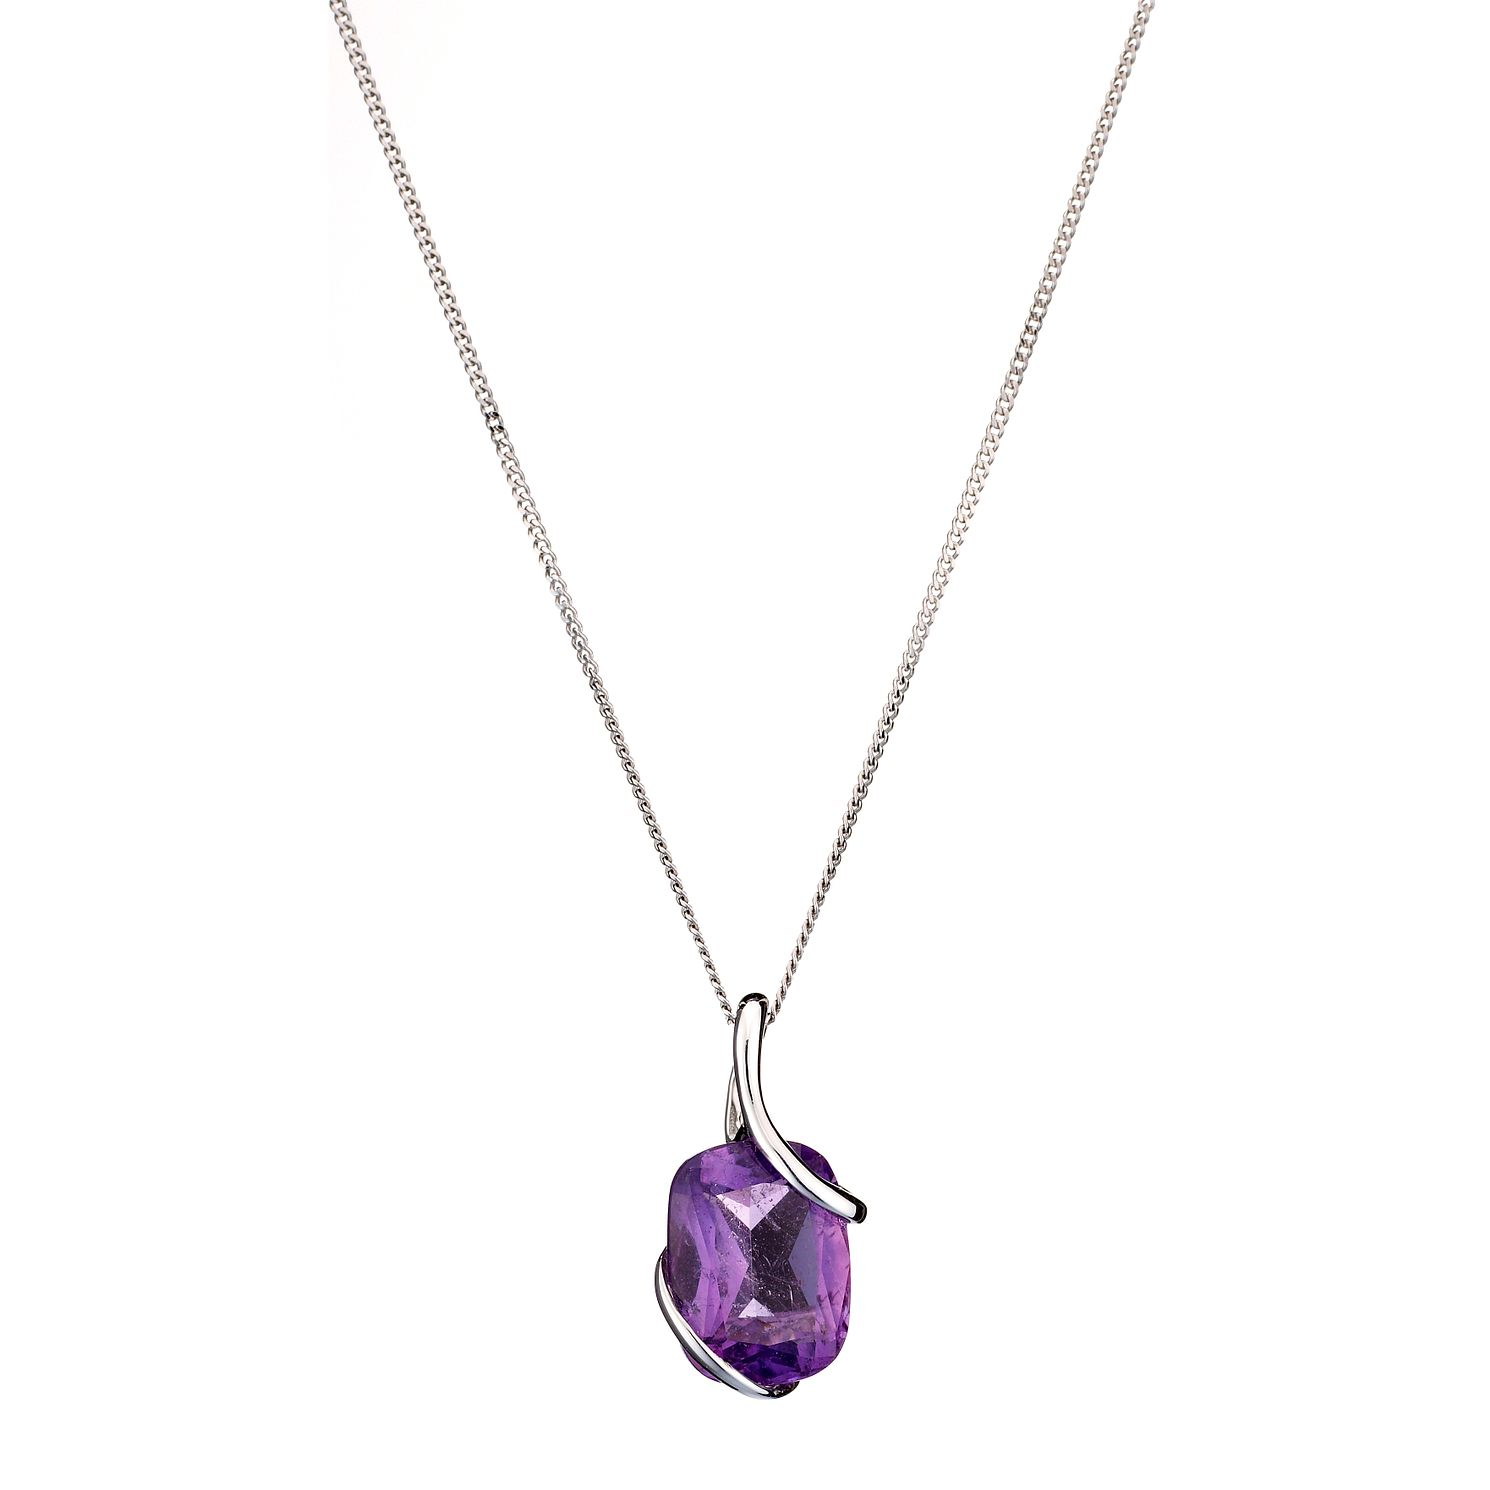 silver ltd amethyst necklace img curiology products collections jewellery sterling